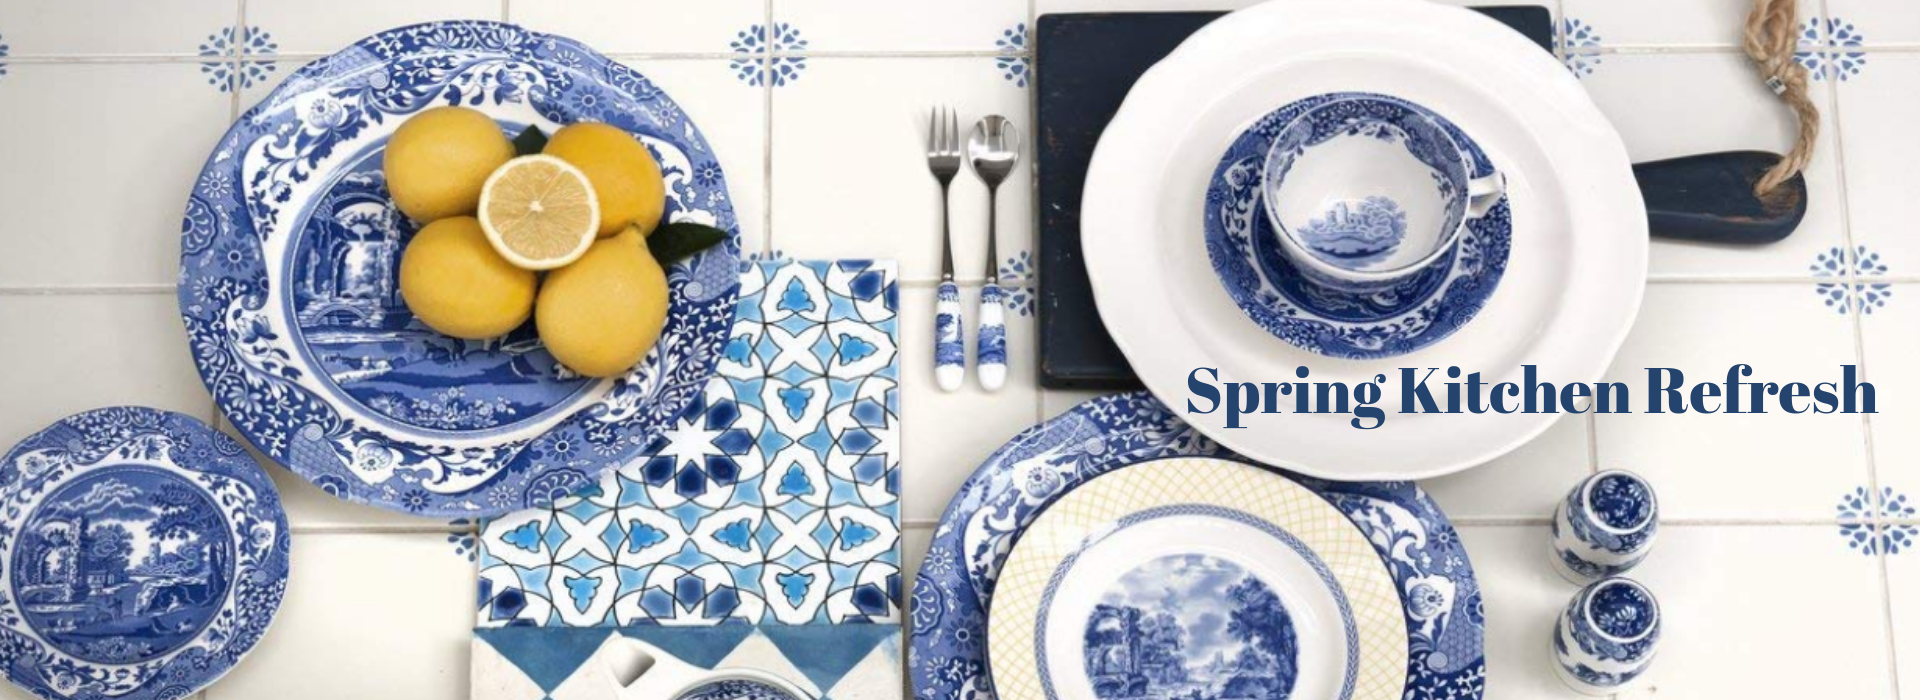 Spring Kitchen Refresh- blue & white dinnerware